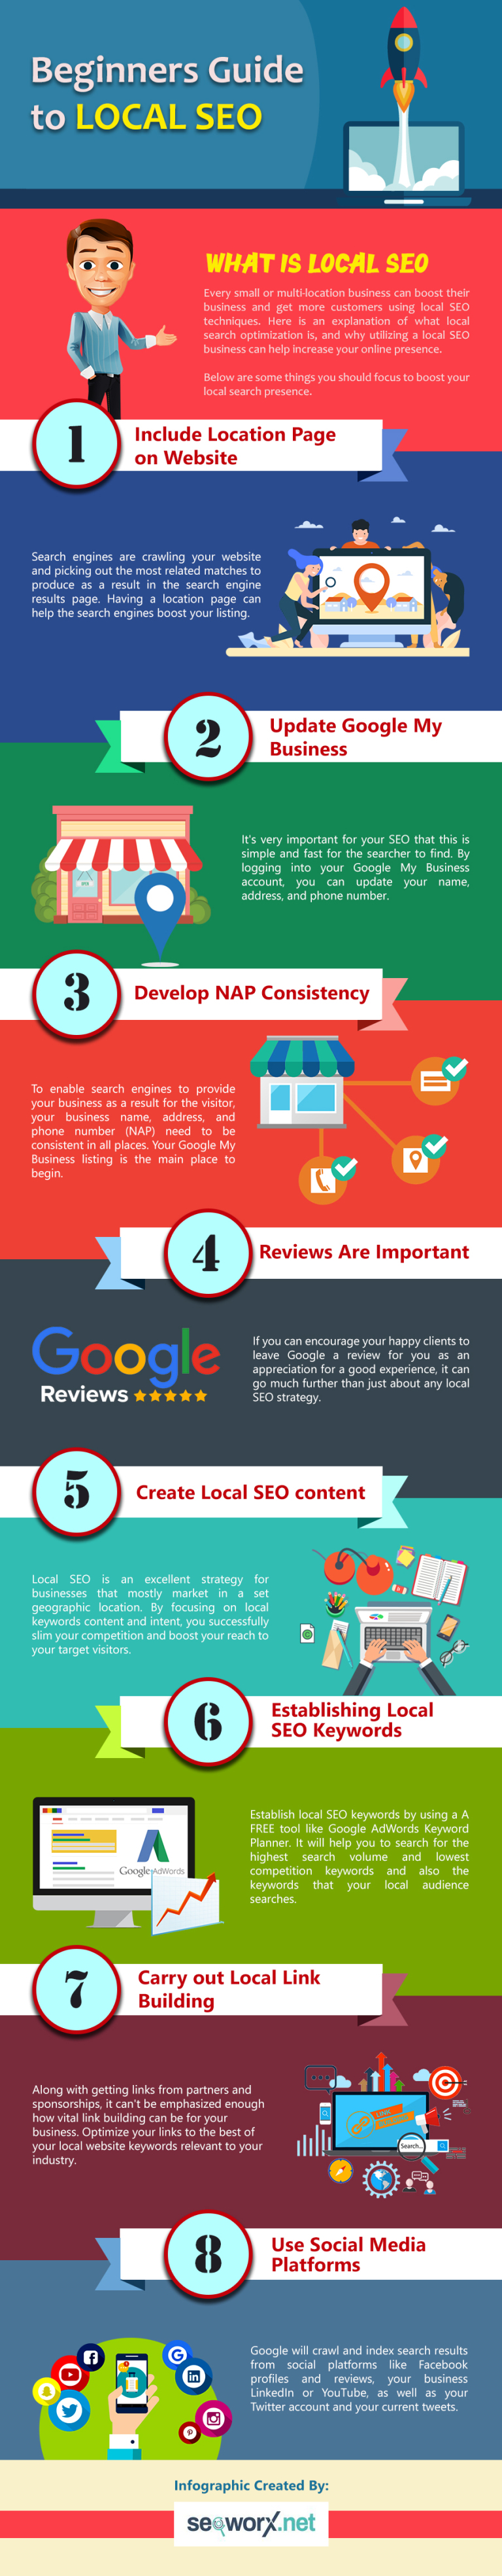 Beginners Guide To Local SEO [Infographic]